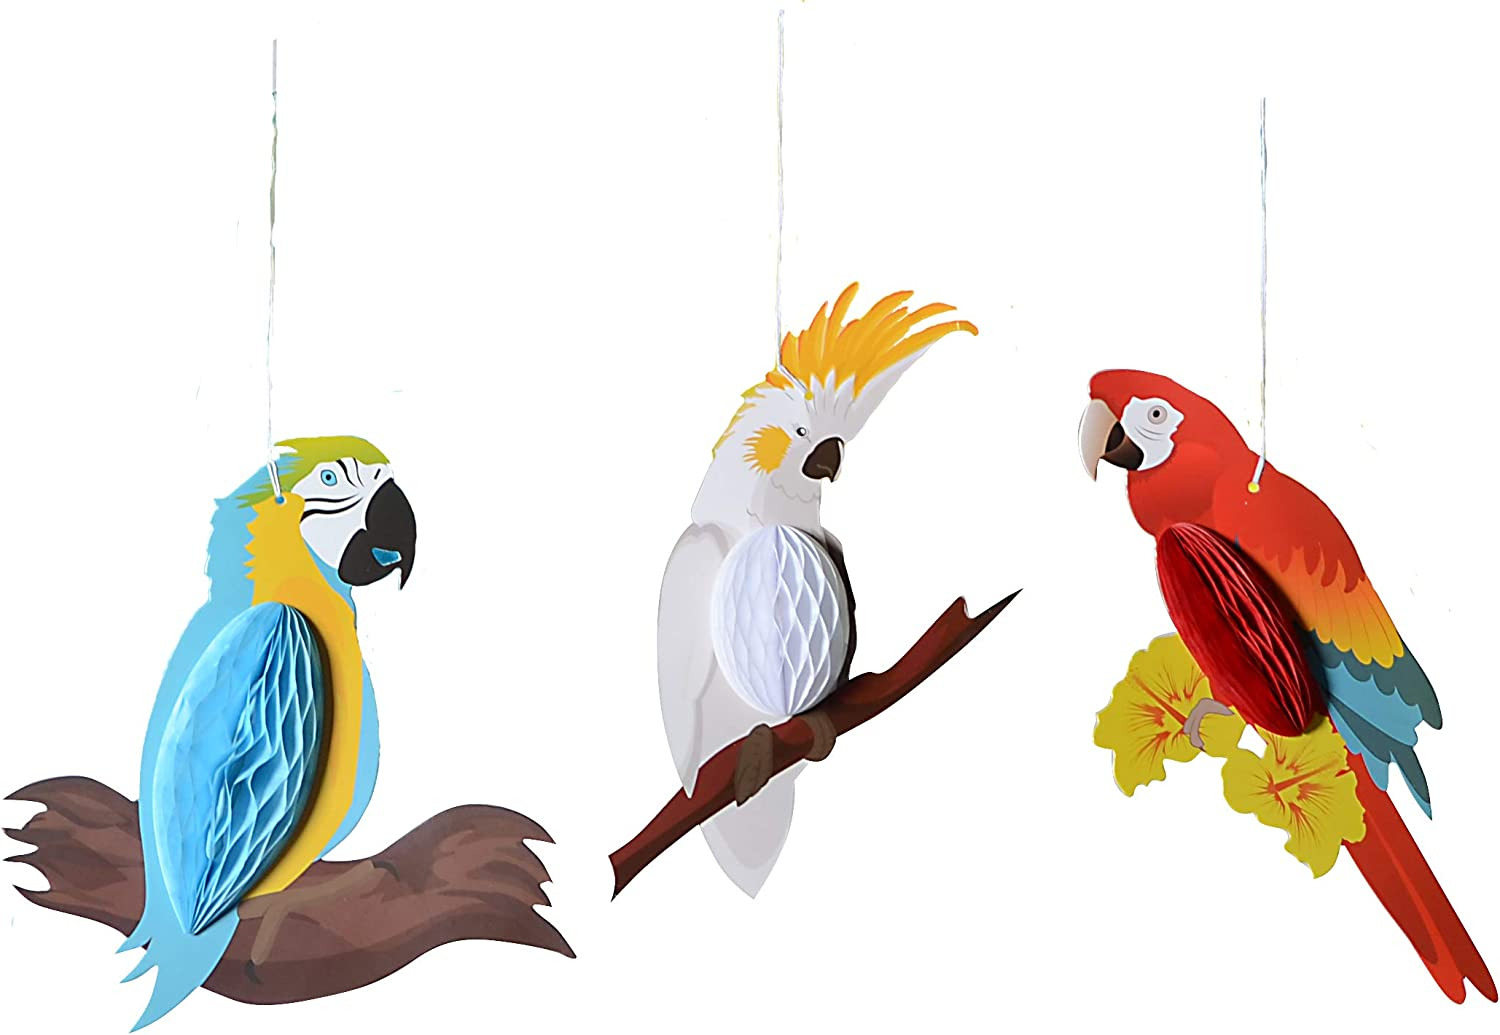 paper jazz Summer Luau Tiki Hawaiian Beach Tropical Party Parrot Tropical Birds Honeycomb Hanging Decorations Red White Blue(Parrot only)